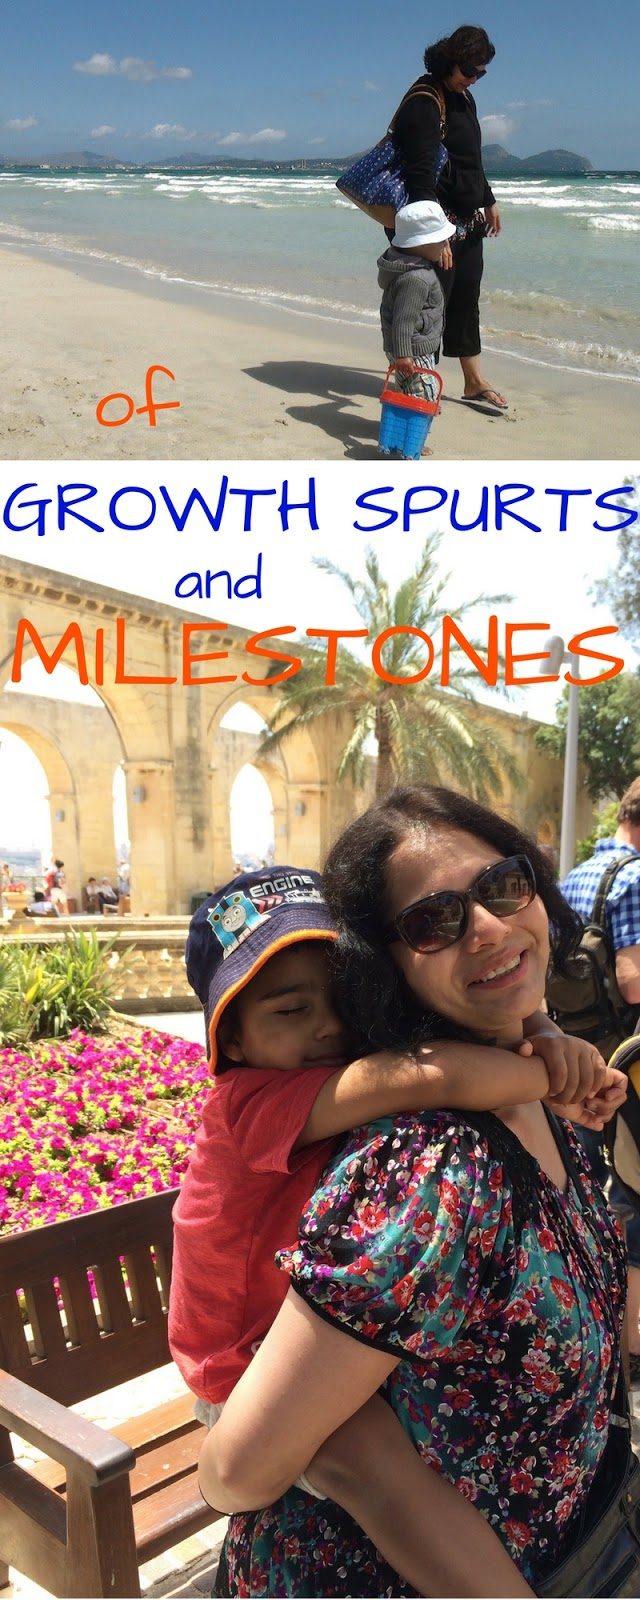 Of Growth Spurts and Milestones